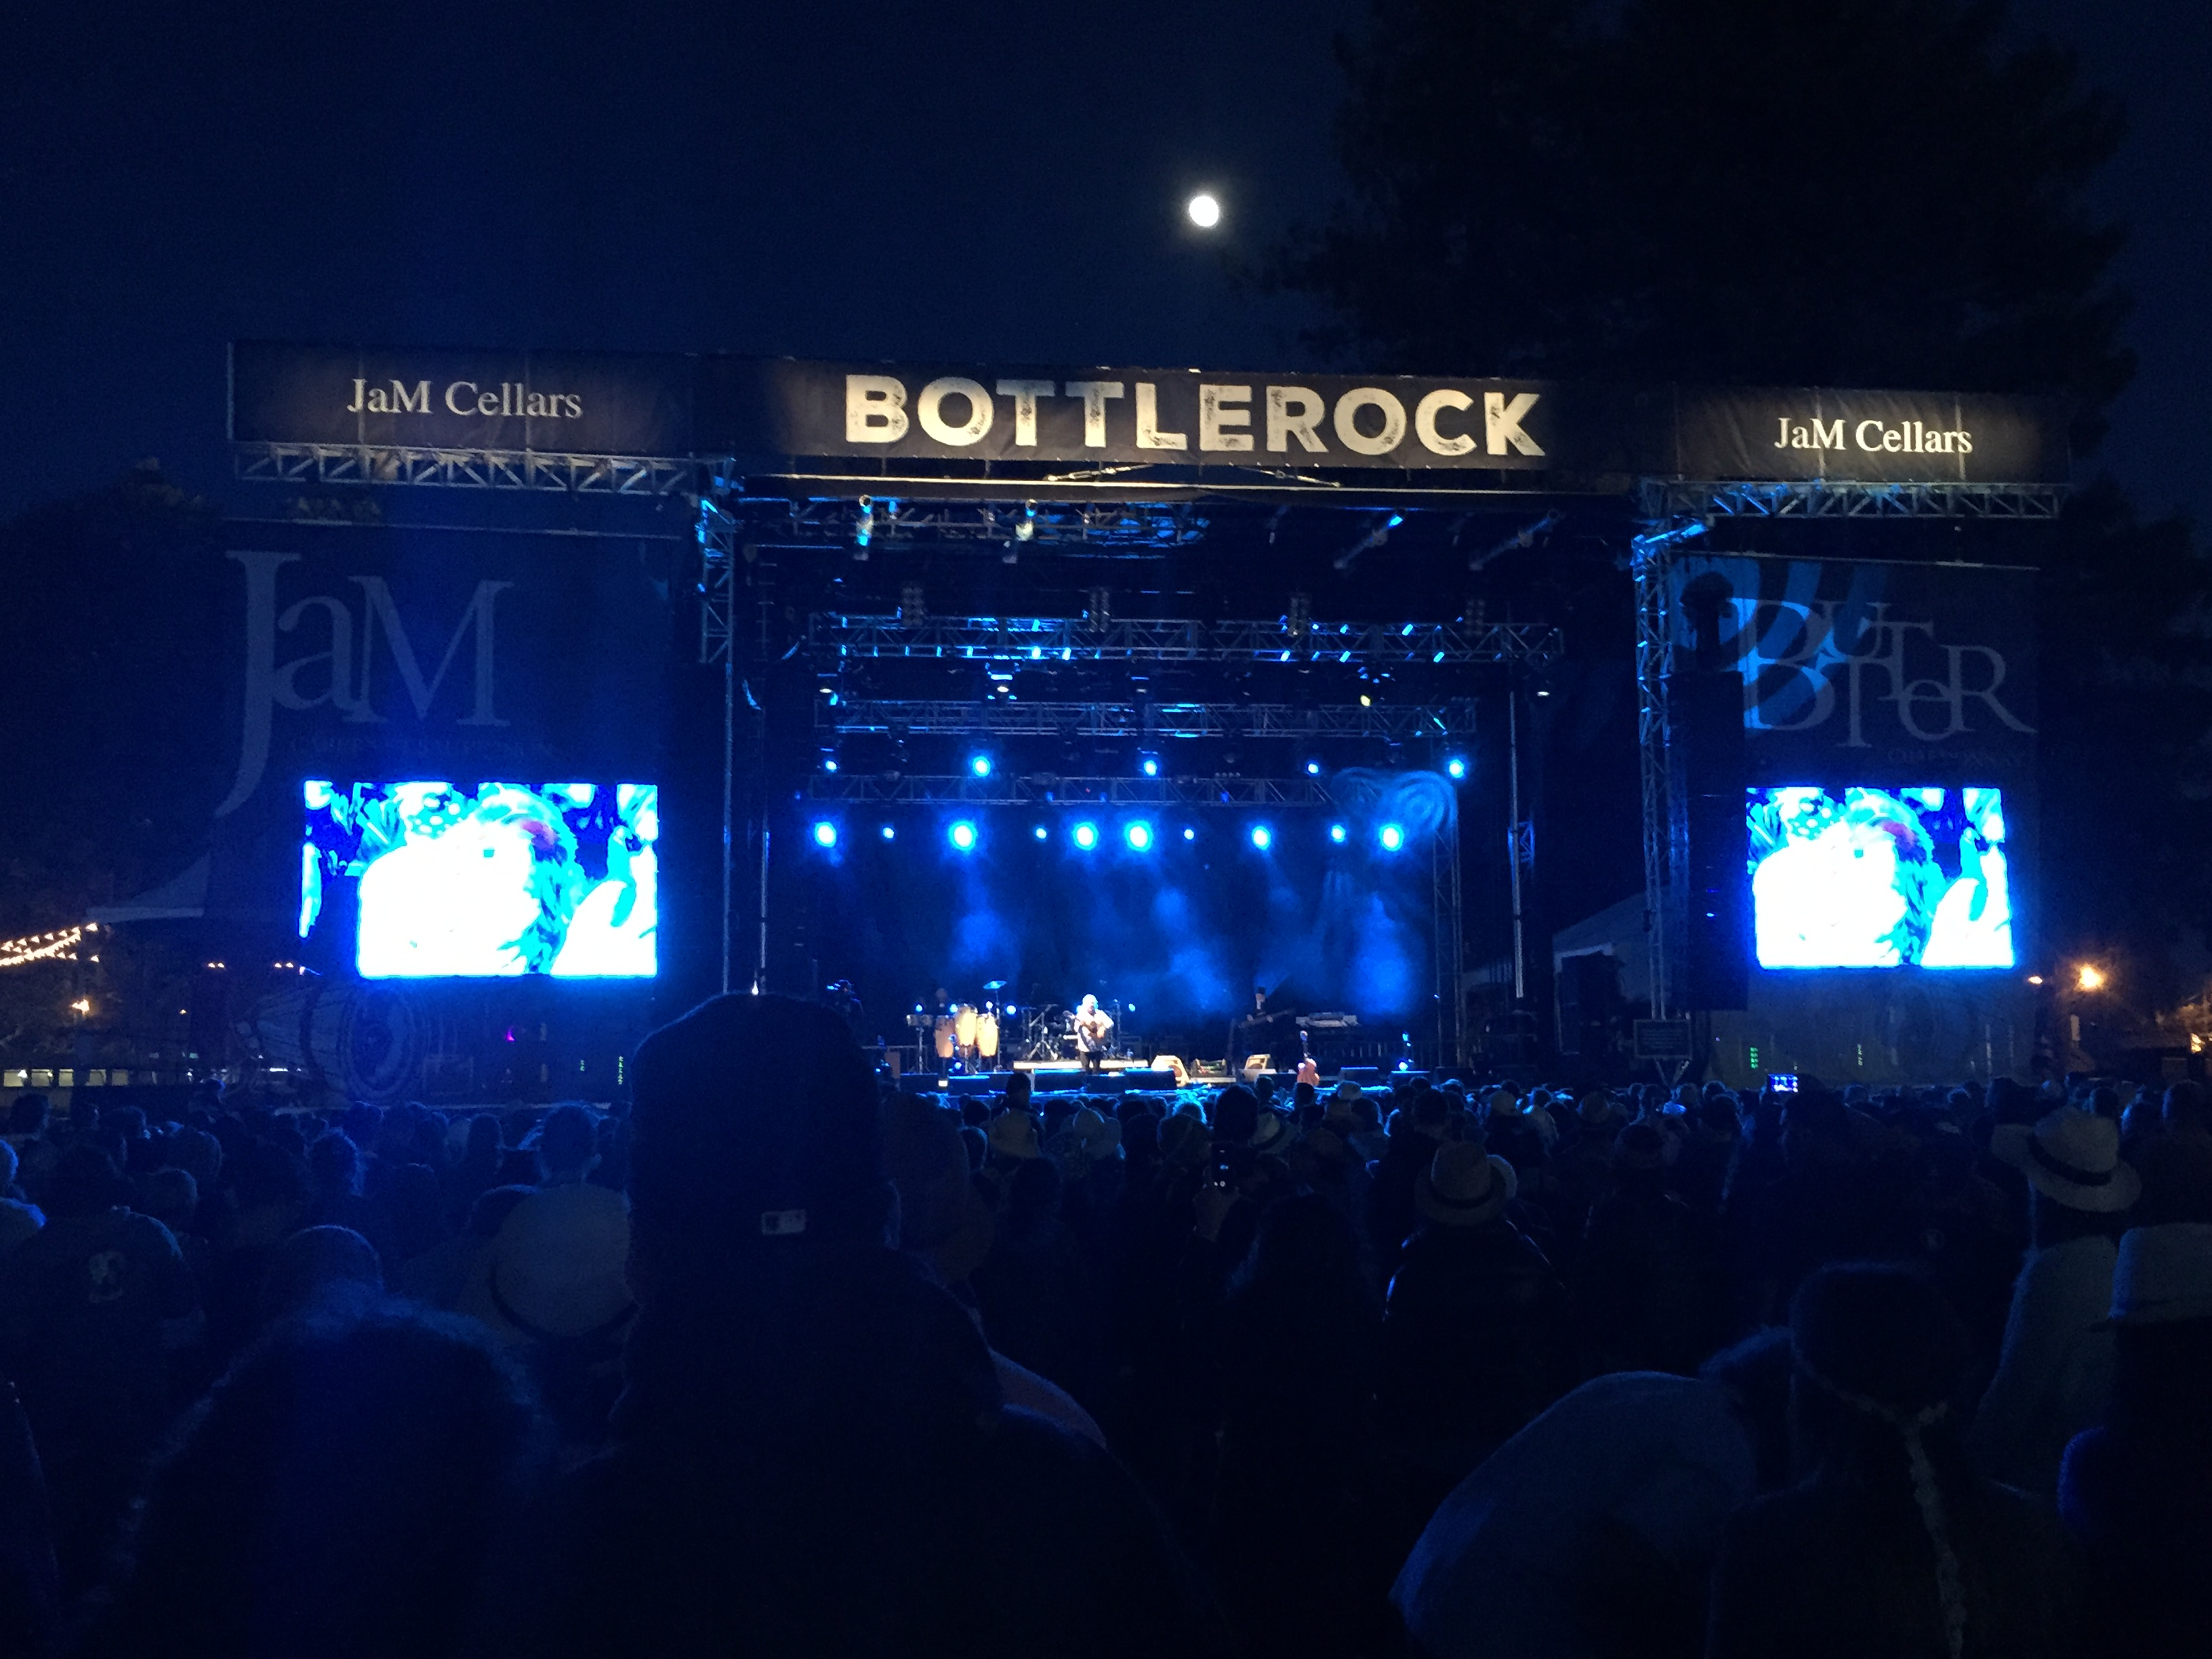 Bottlerock 2015 - Jam Cellars Stage & Martin Audio on Main u0026 Second stages at Bottlerock u2013 Rob Speight ...